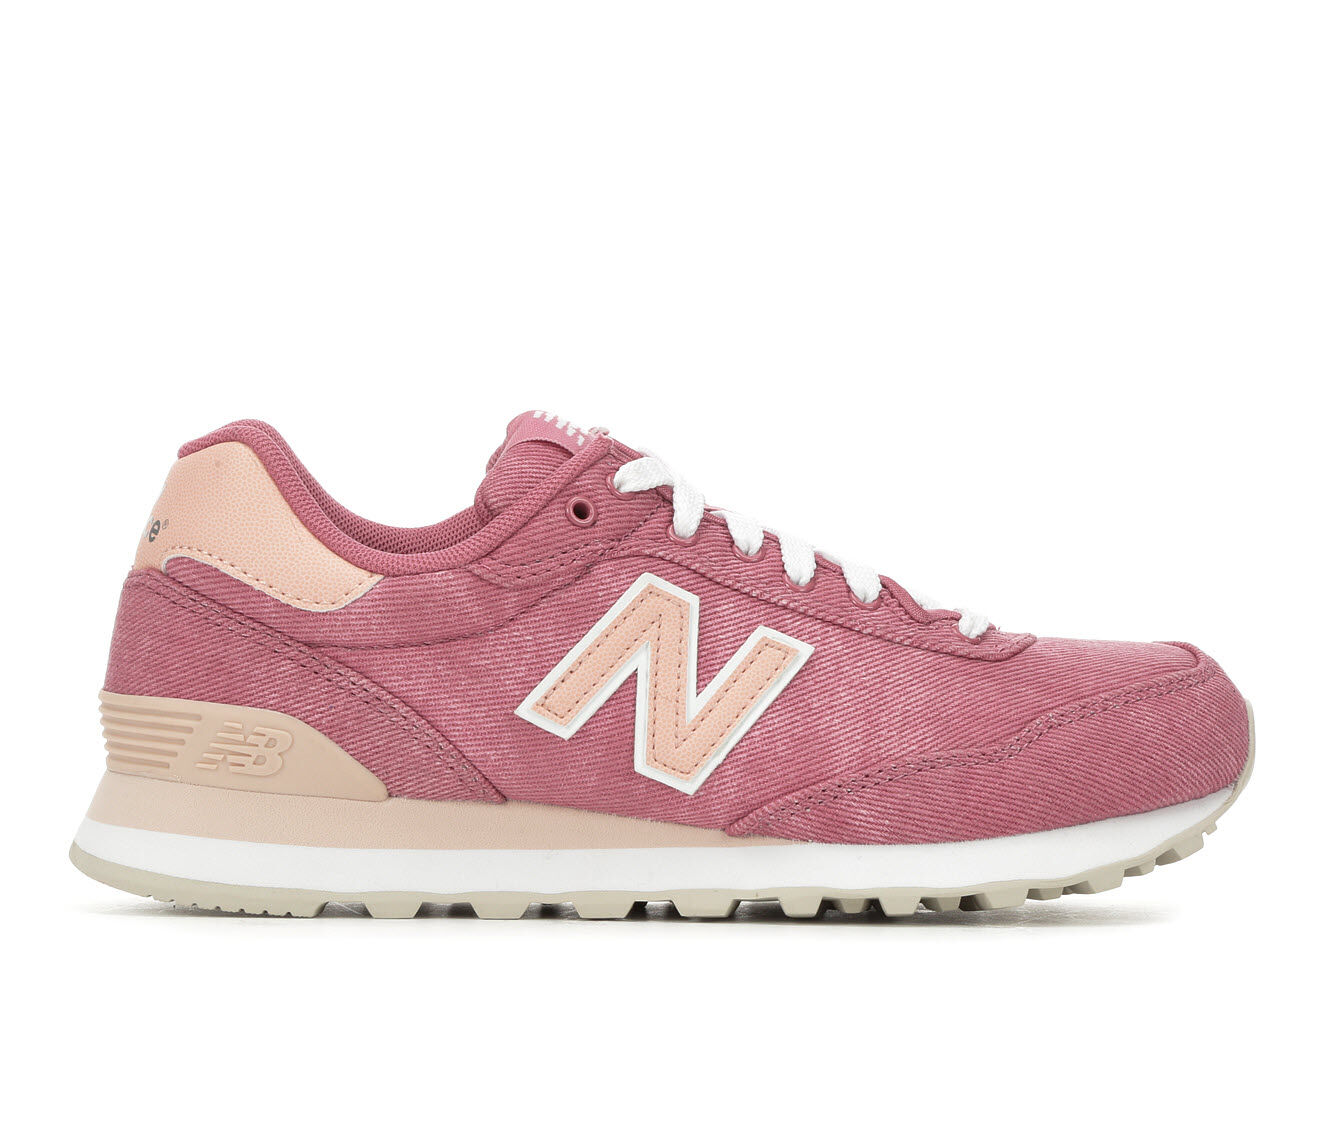 Women's New Balance WL515 Retro Sneakers Oyster Pnk/Rose